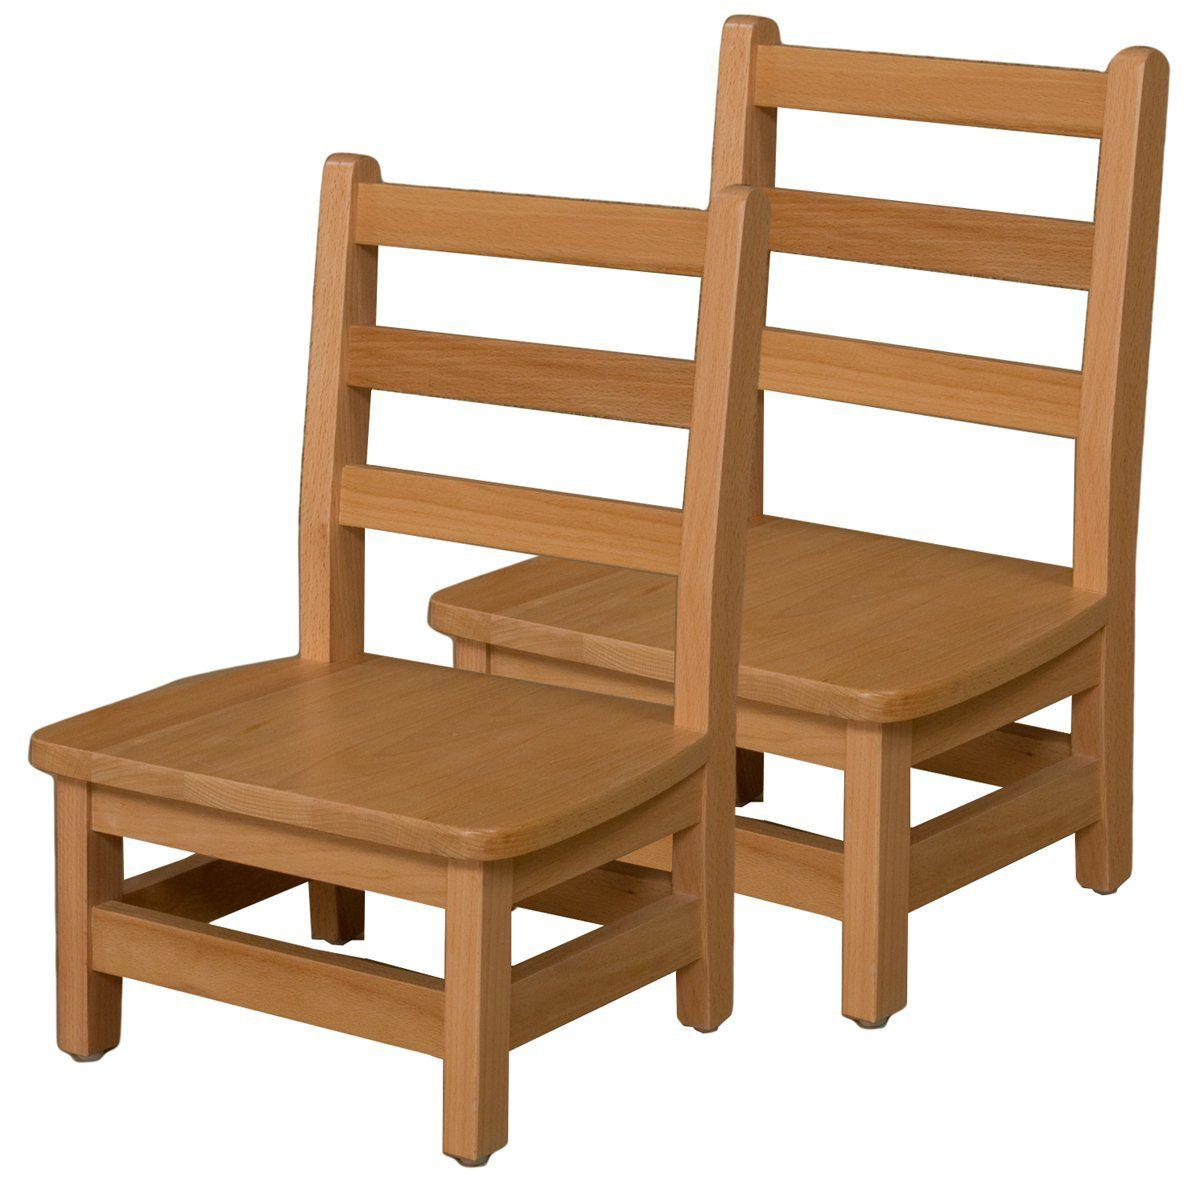 Wood Designs Hardwood Ladderback Chairs, Carton of 2